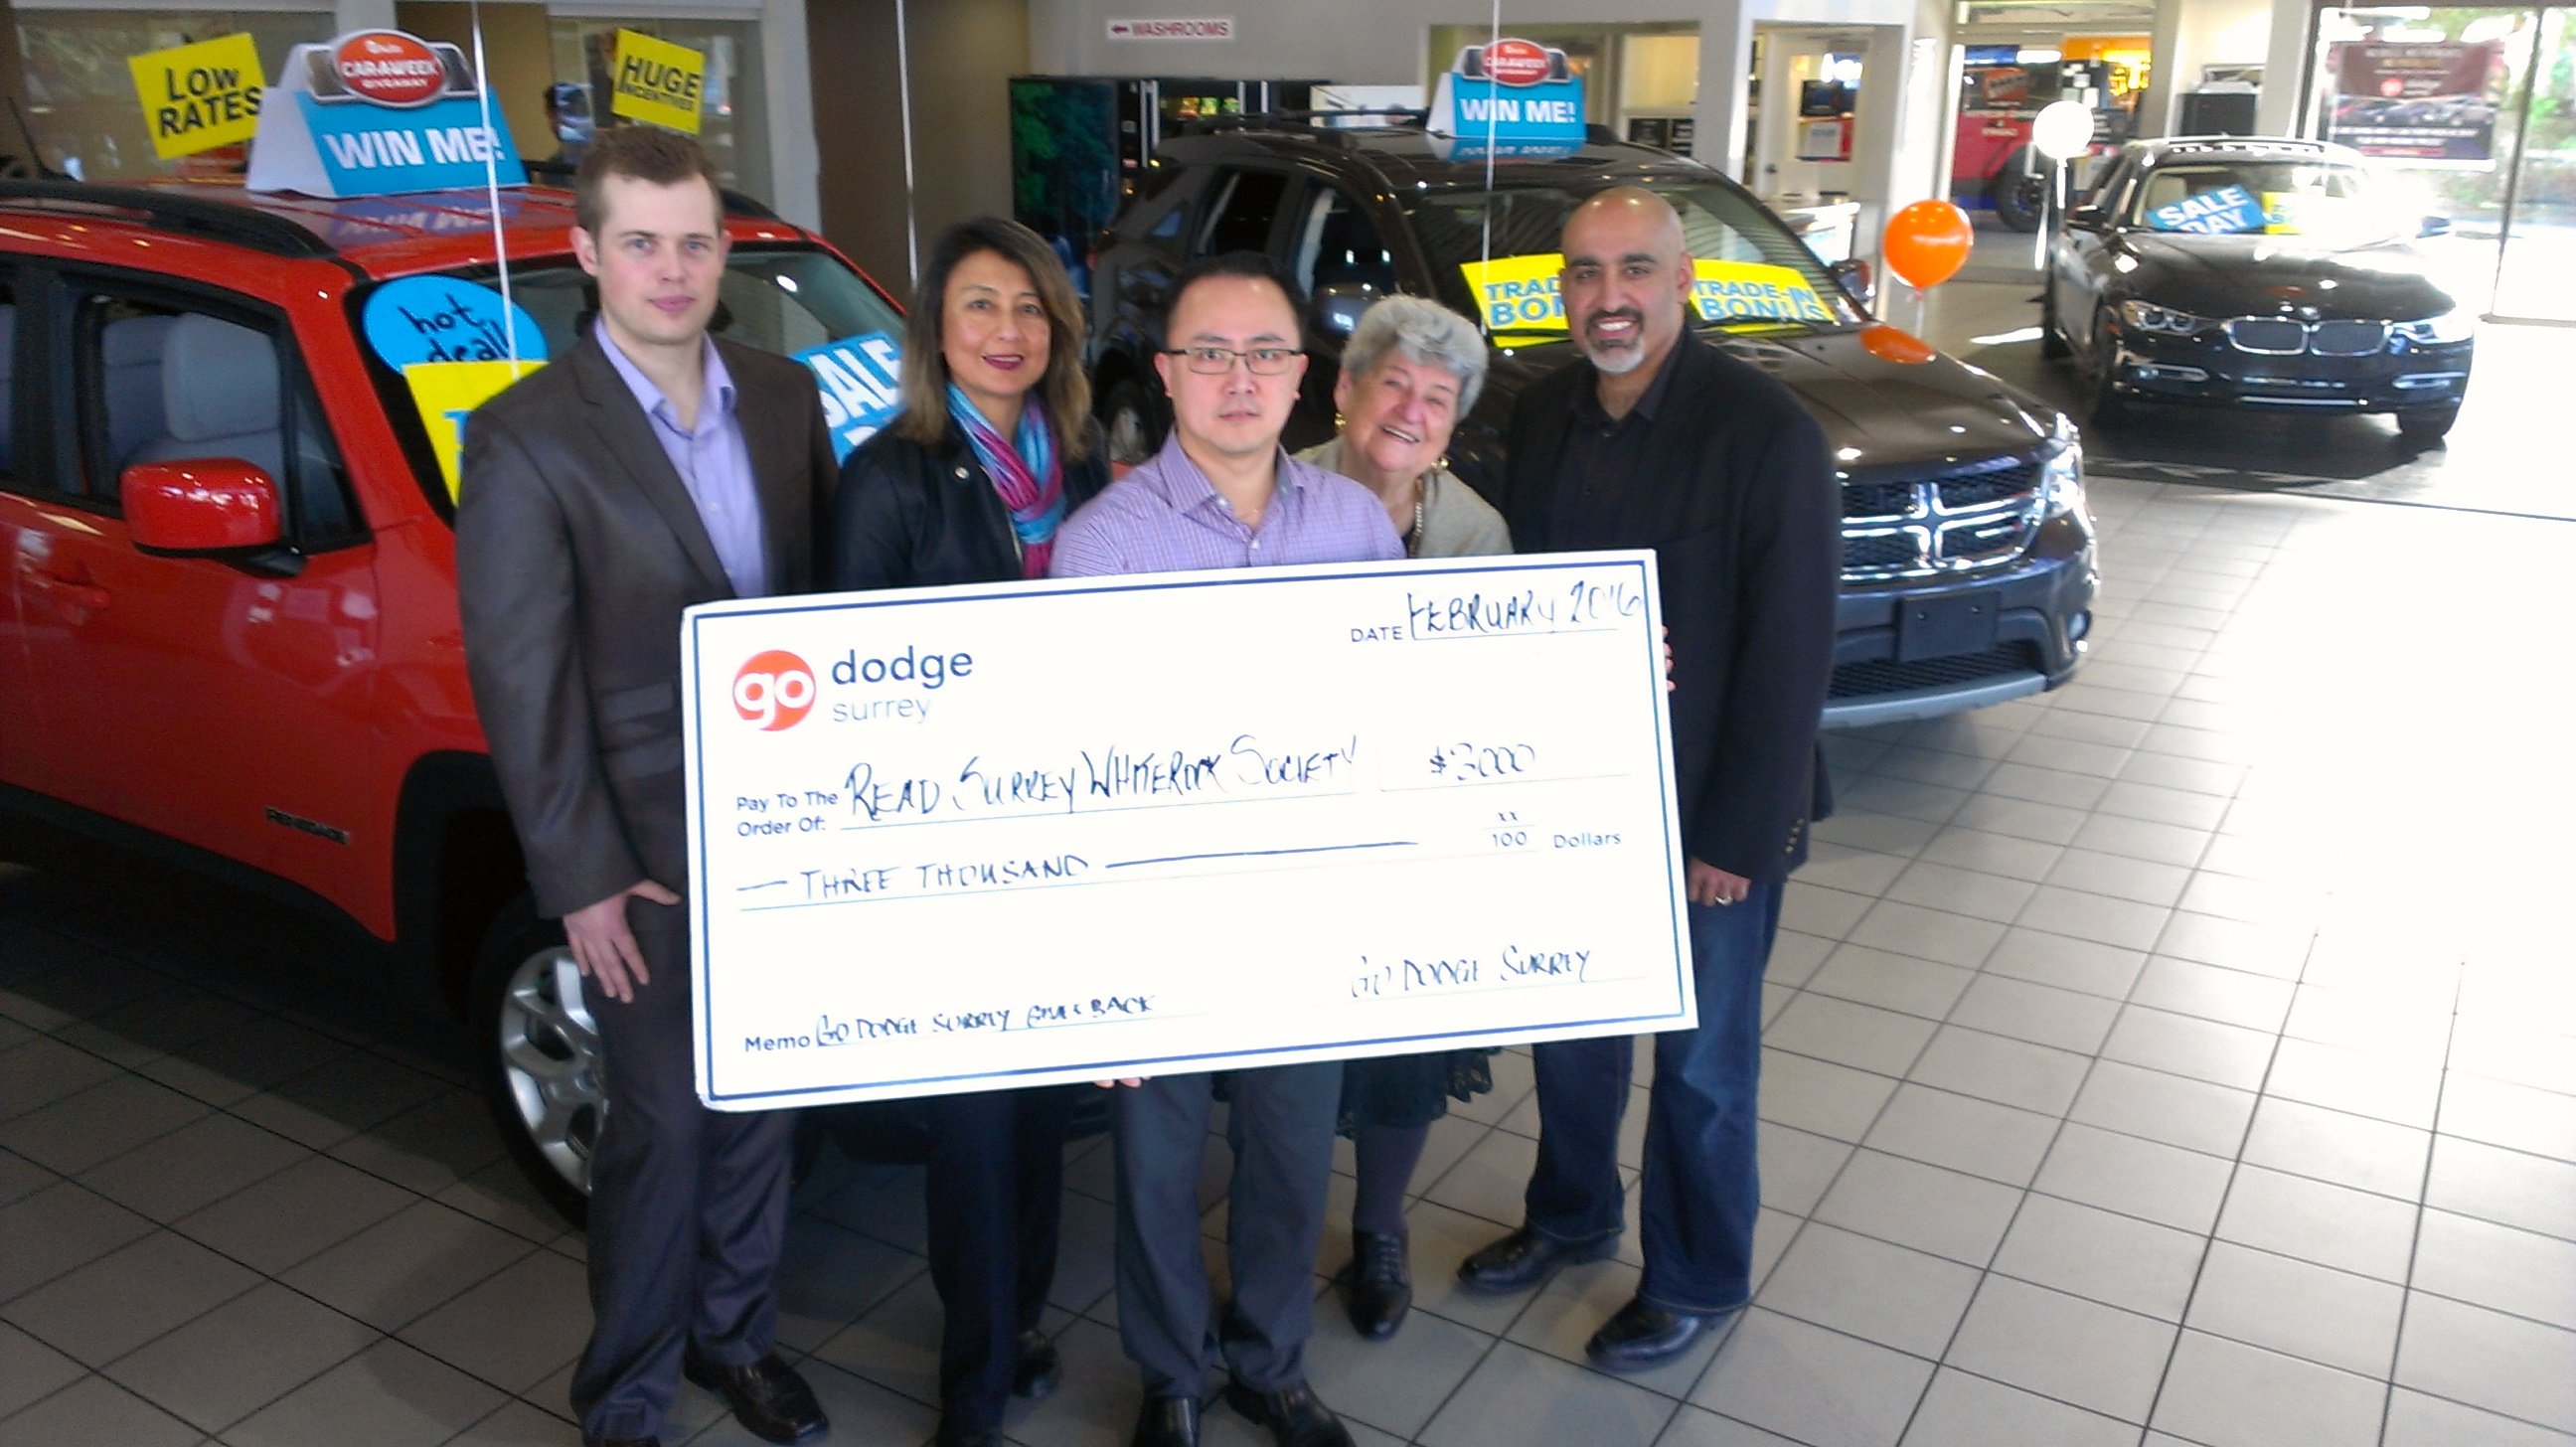 Go Dodge Surrey Community Donation